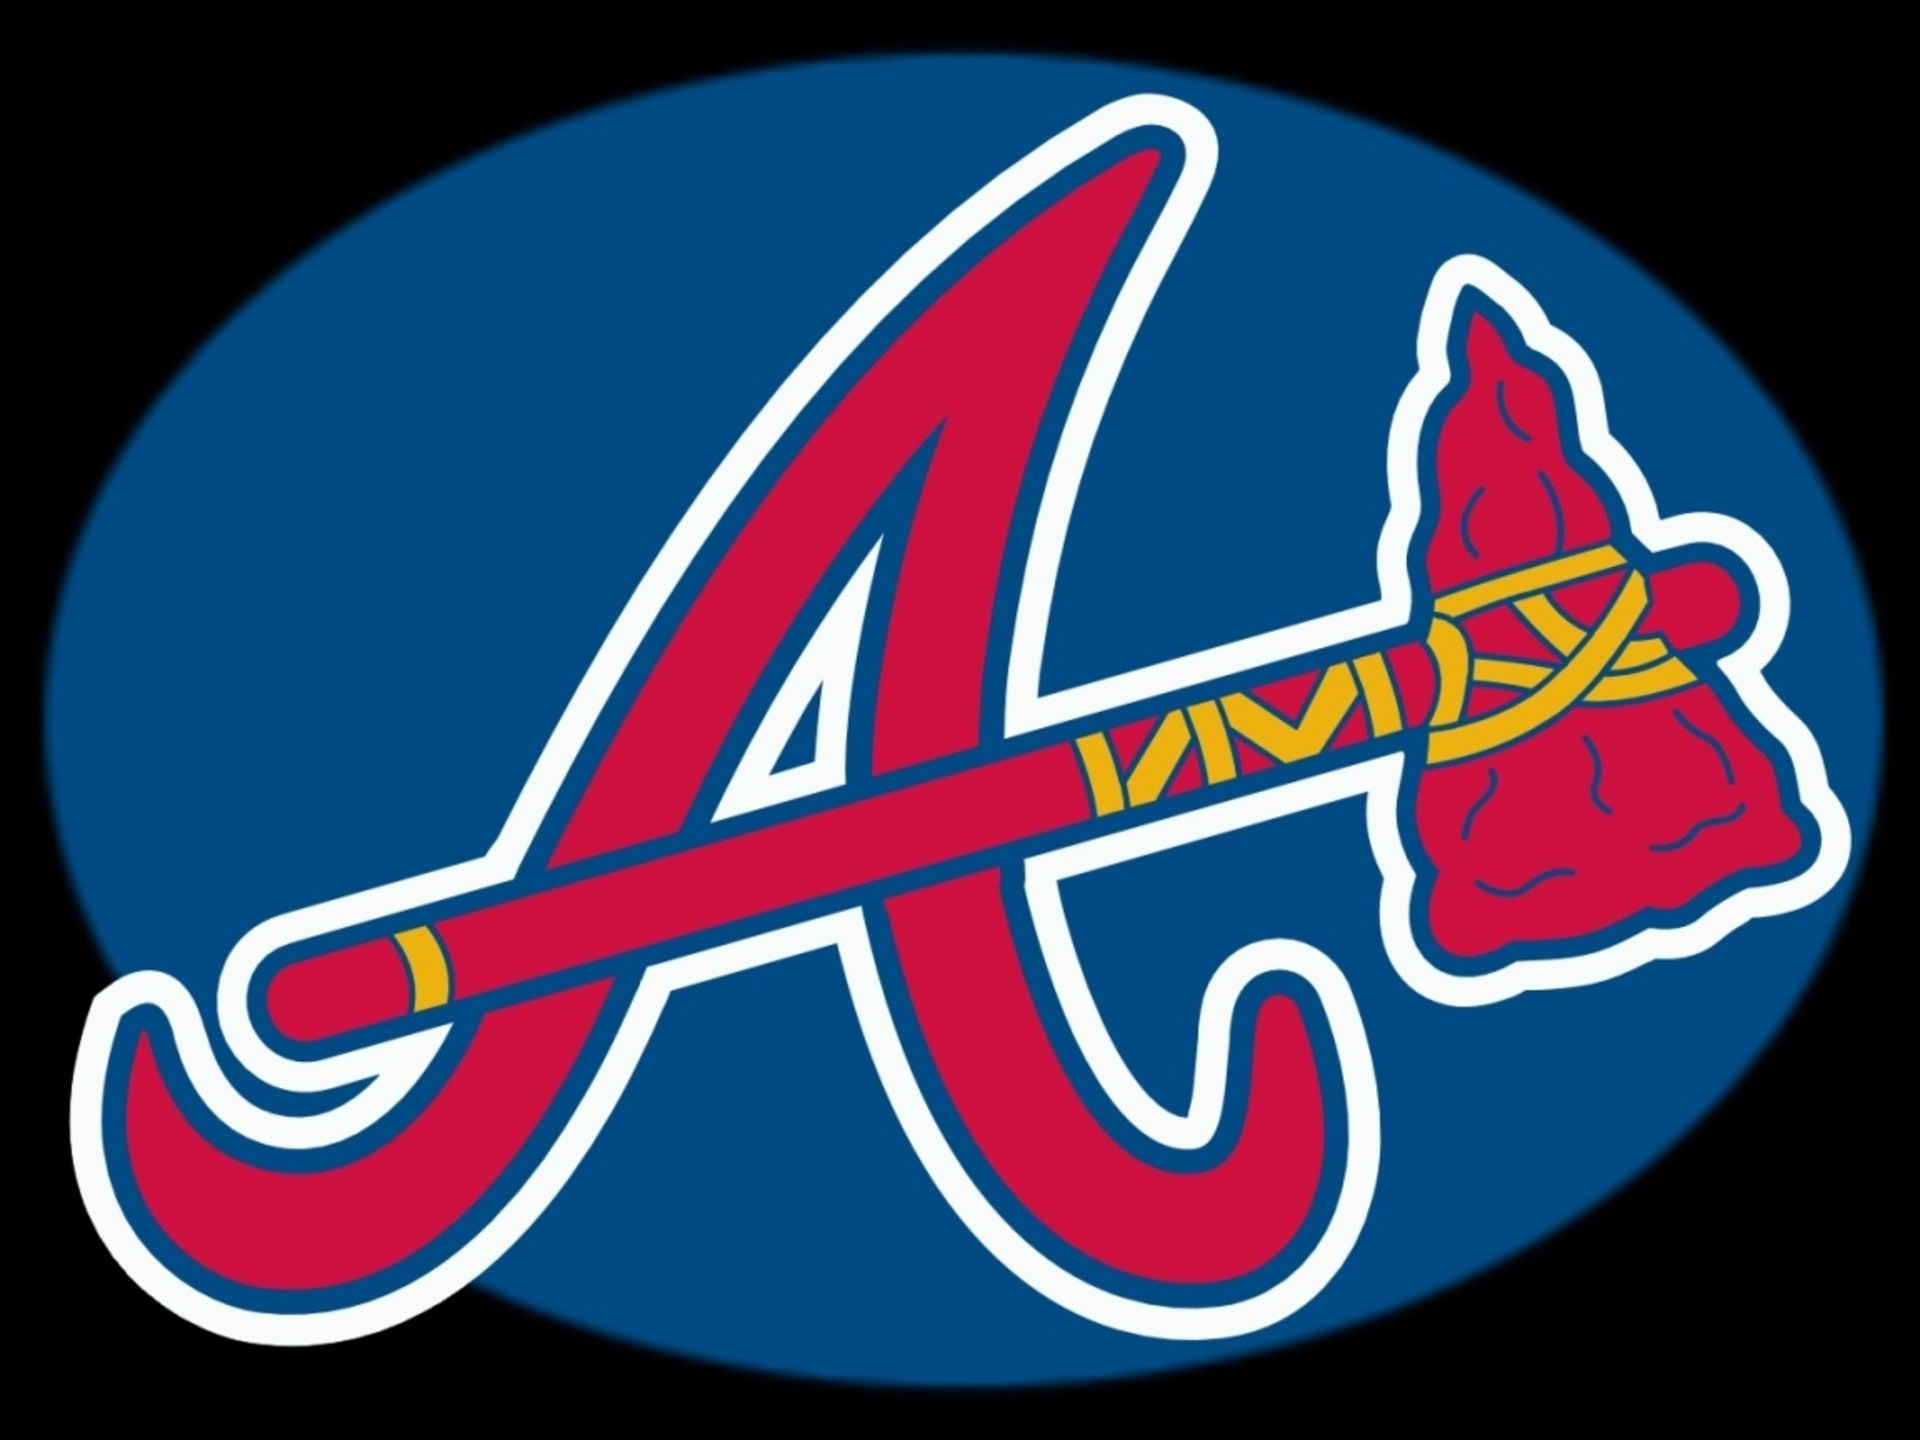 Best Atlanta Braves Background Wallpaper Amazing free HD 3D wallpapers  collection-You can download best